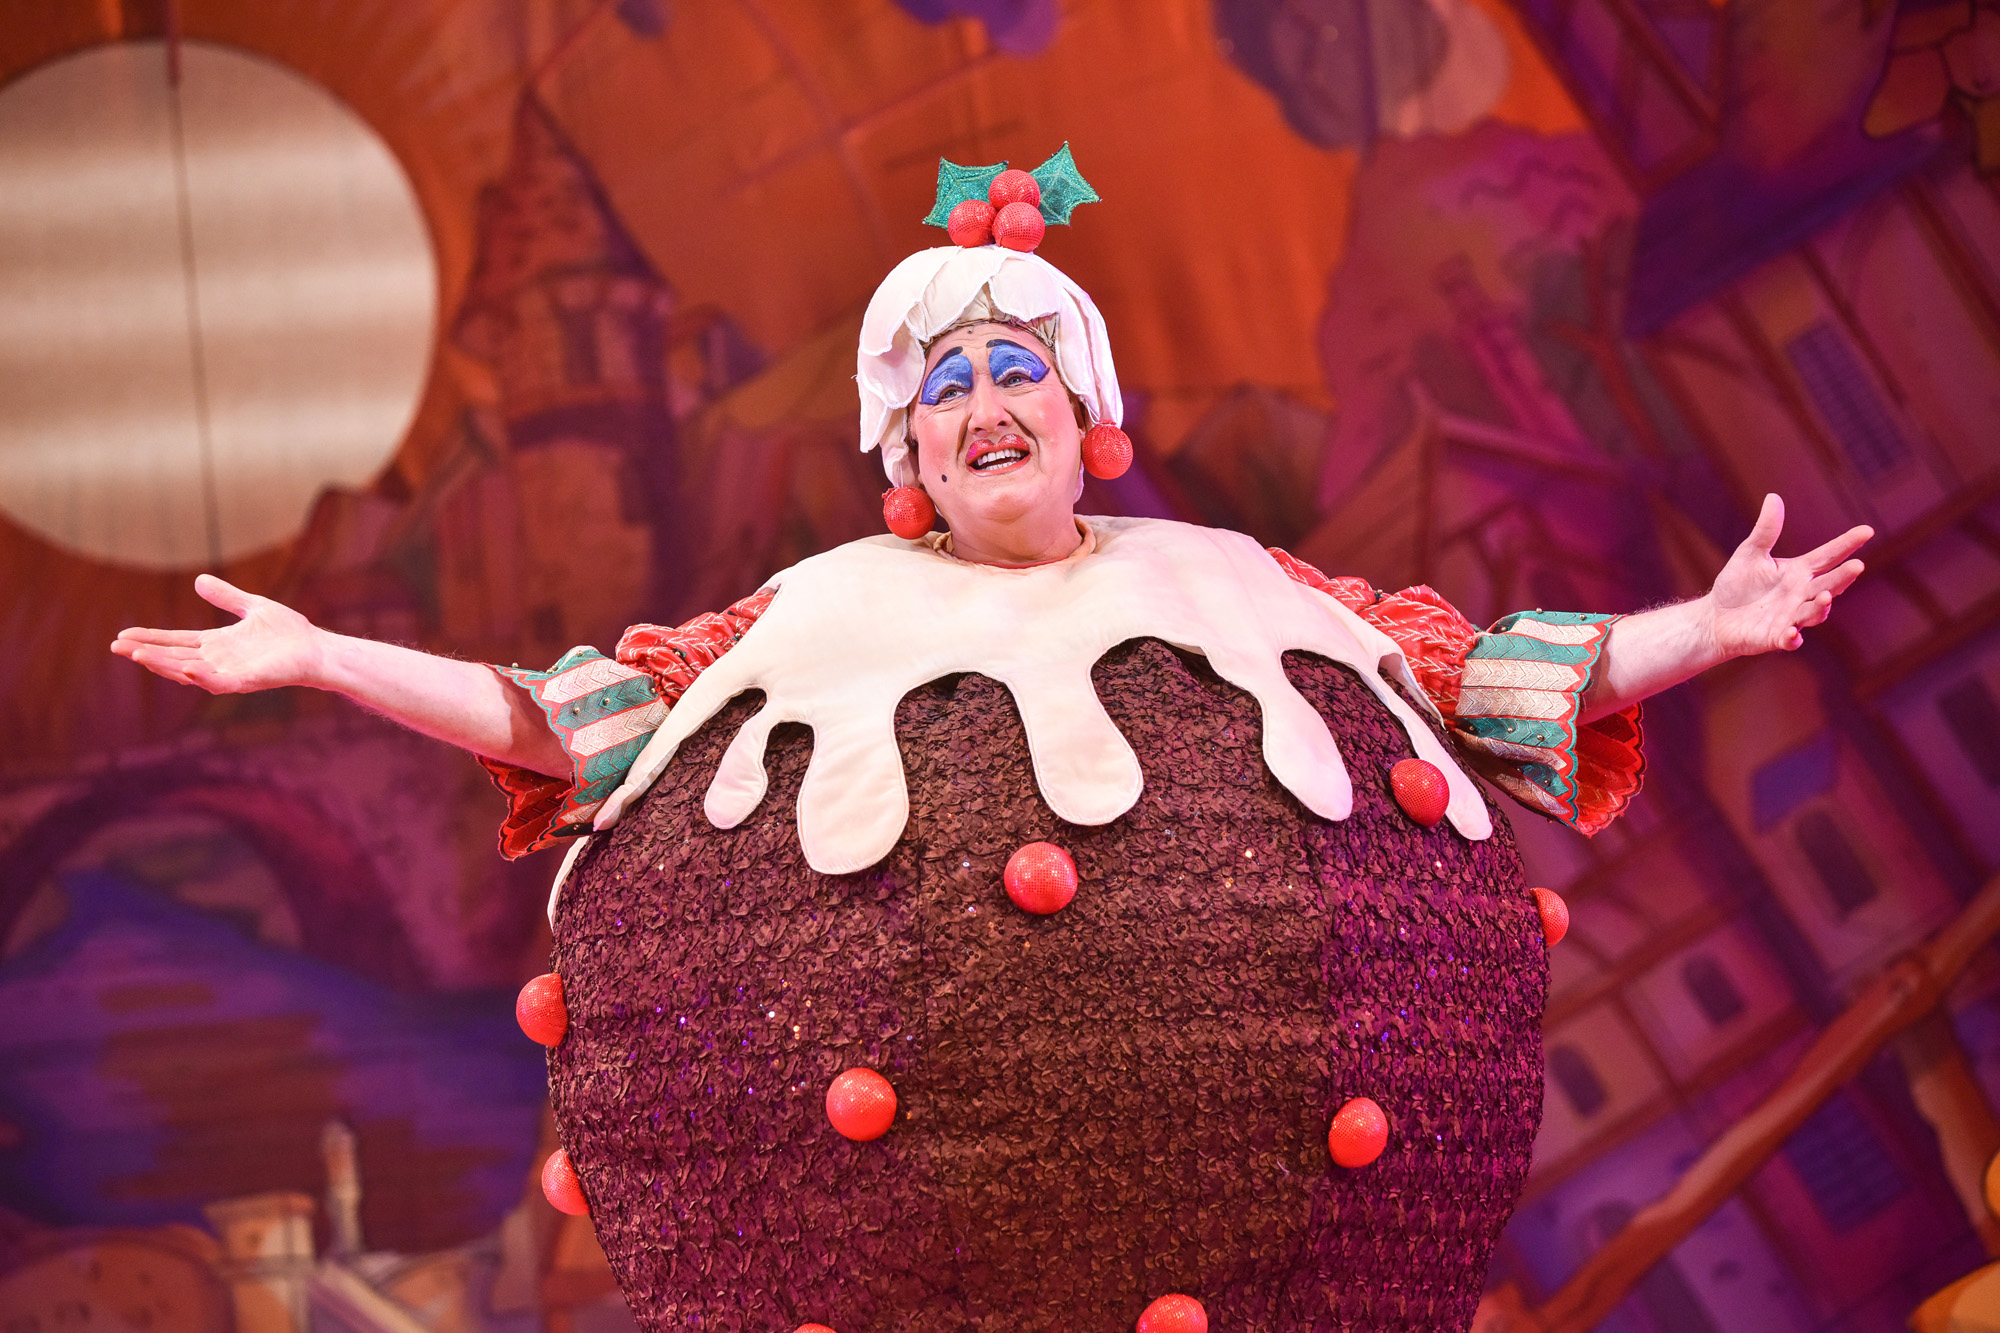 Iain Lauchlan as Matilda Pudding (Puss in Boots, 2019/20)